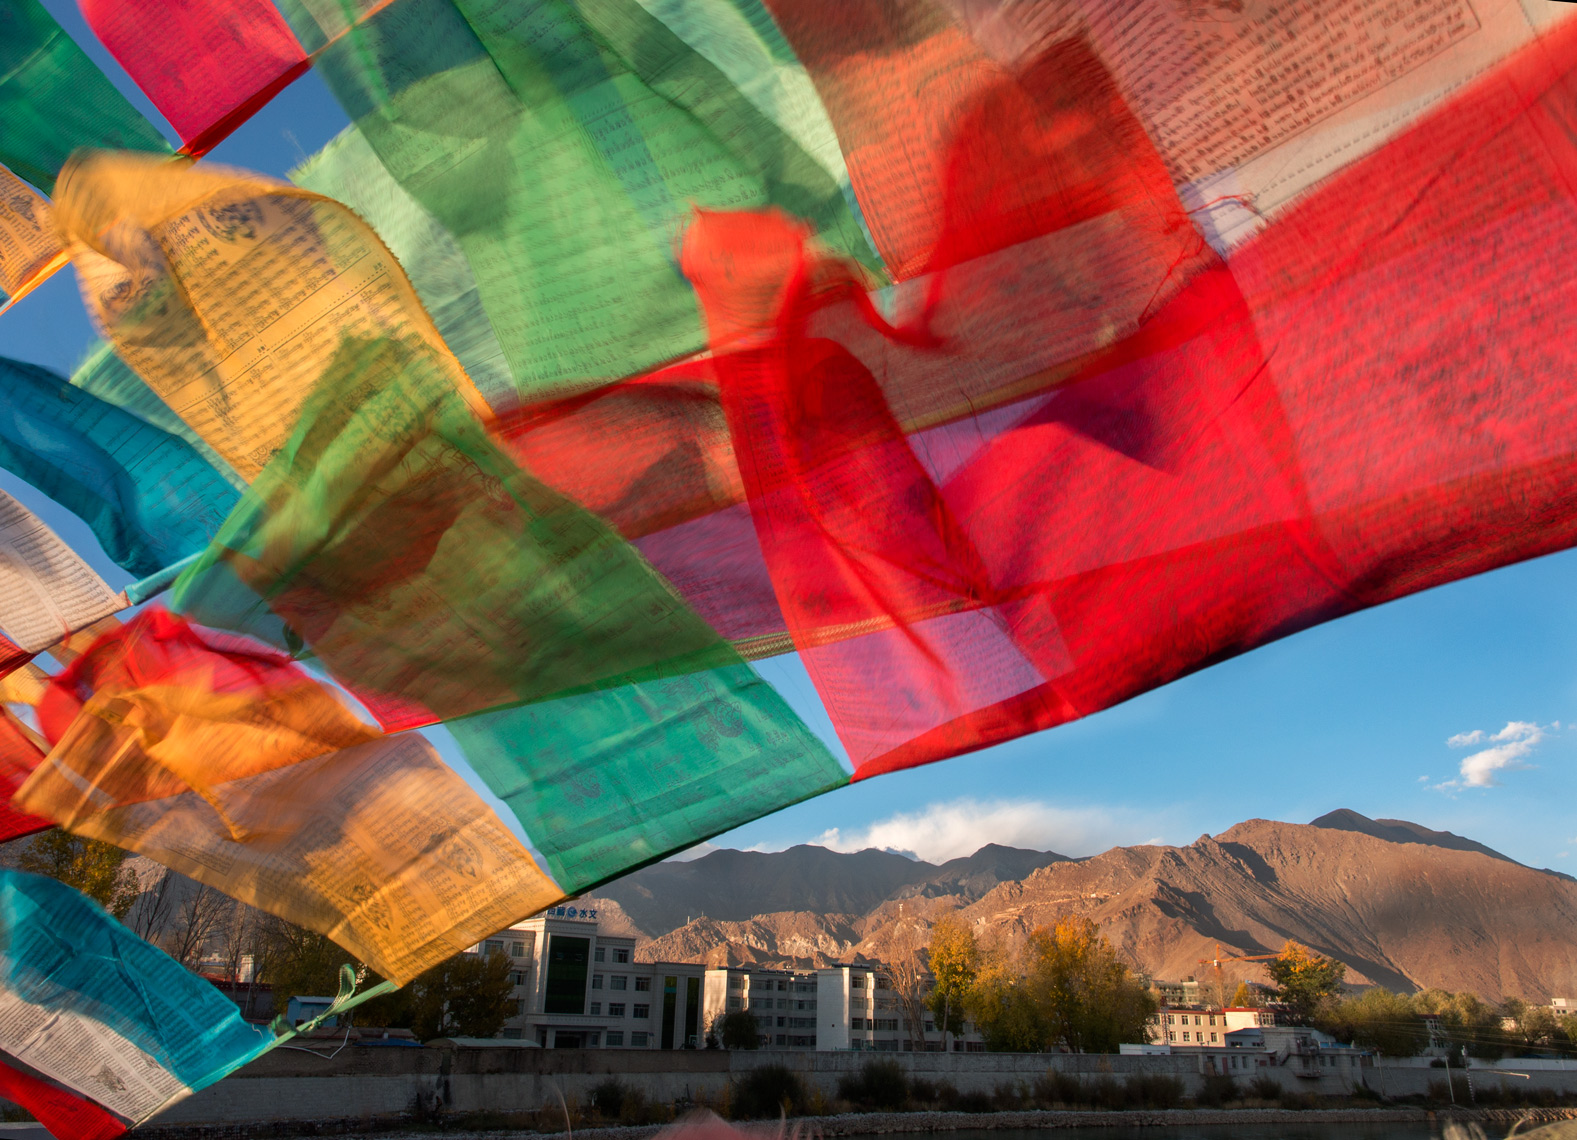 Lhasa, Tibet prayer flags